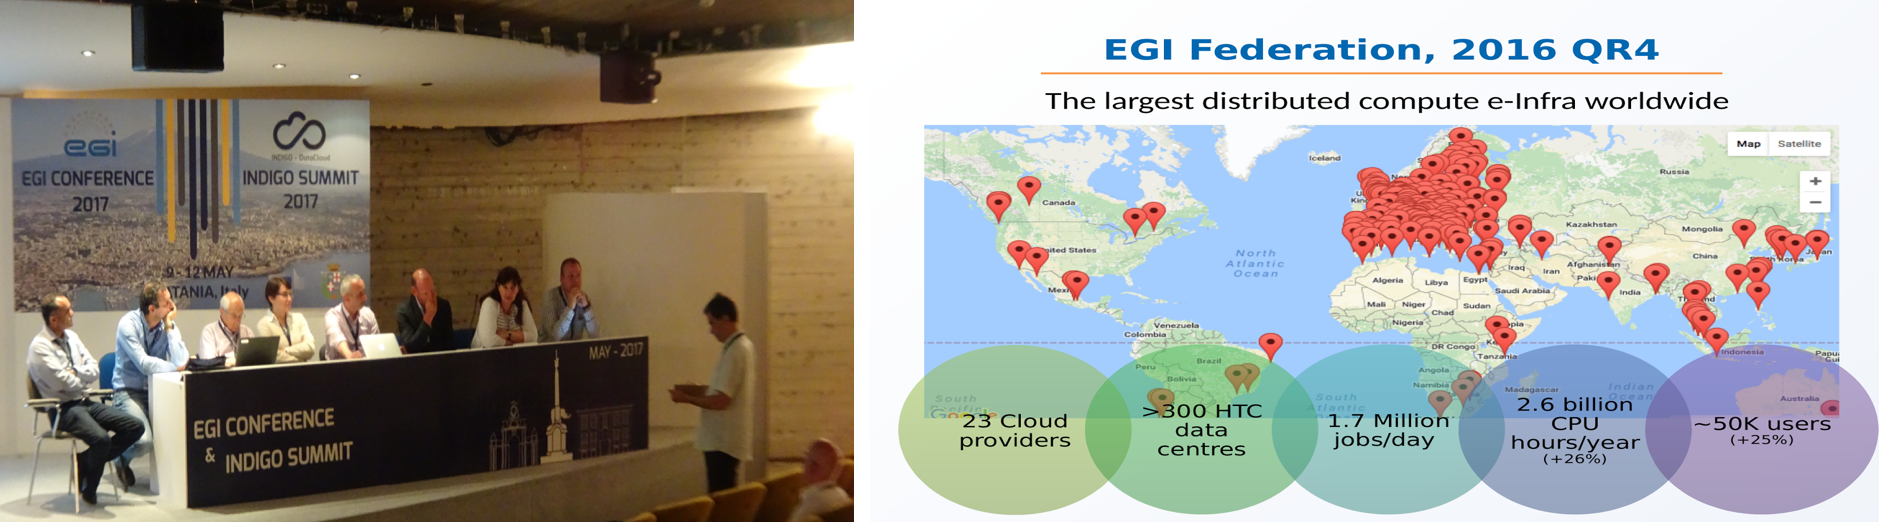 Panel discussion and a slide from EGI Federation talk.